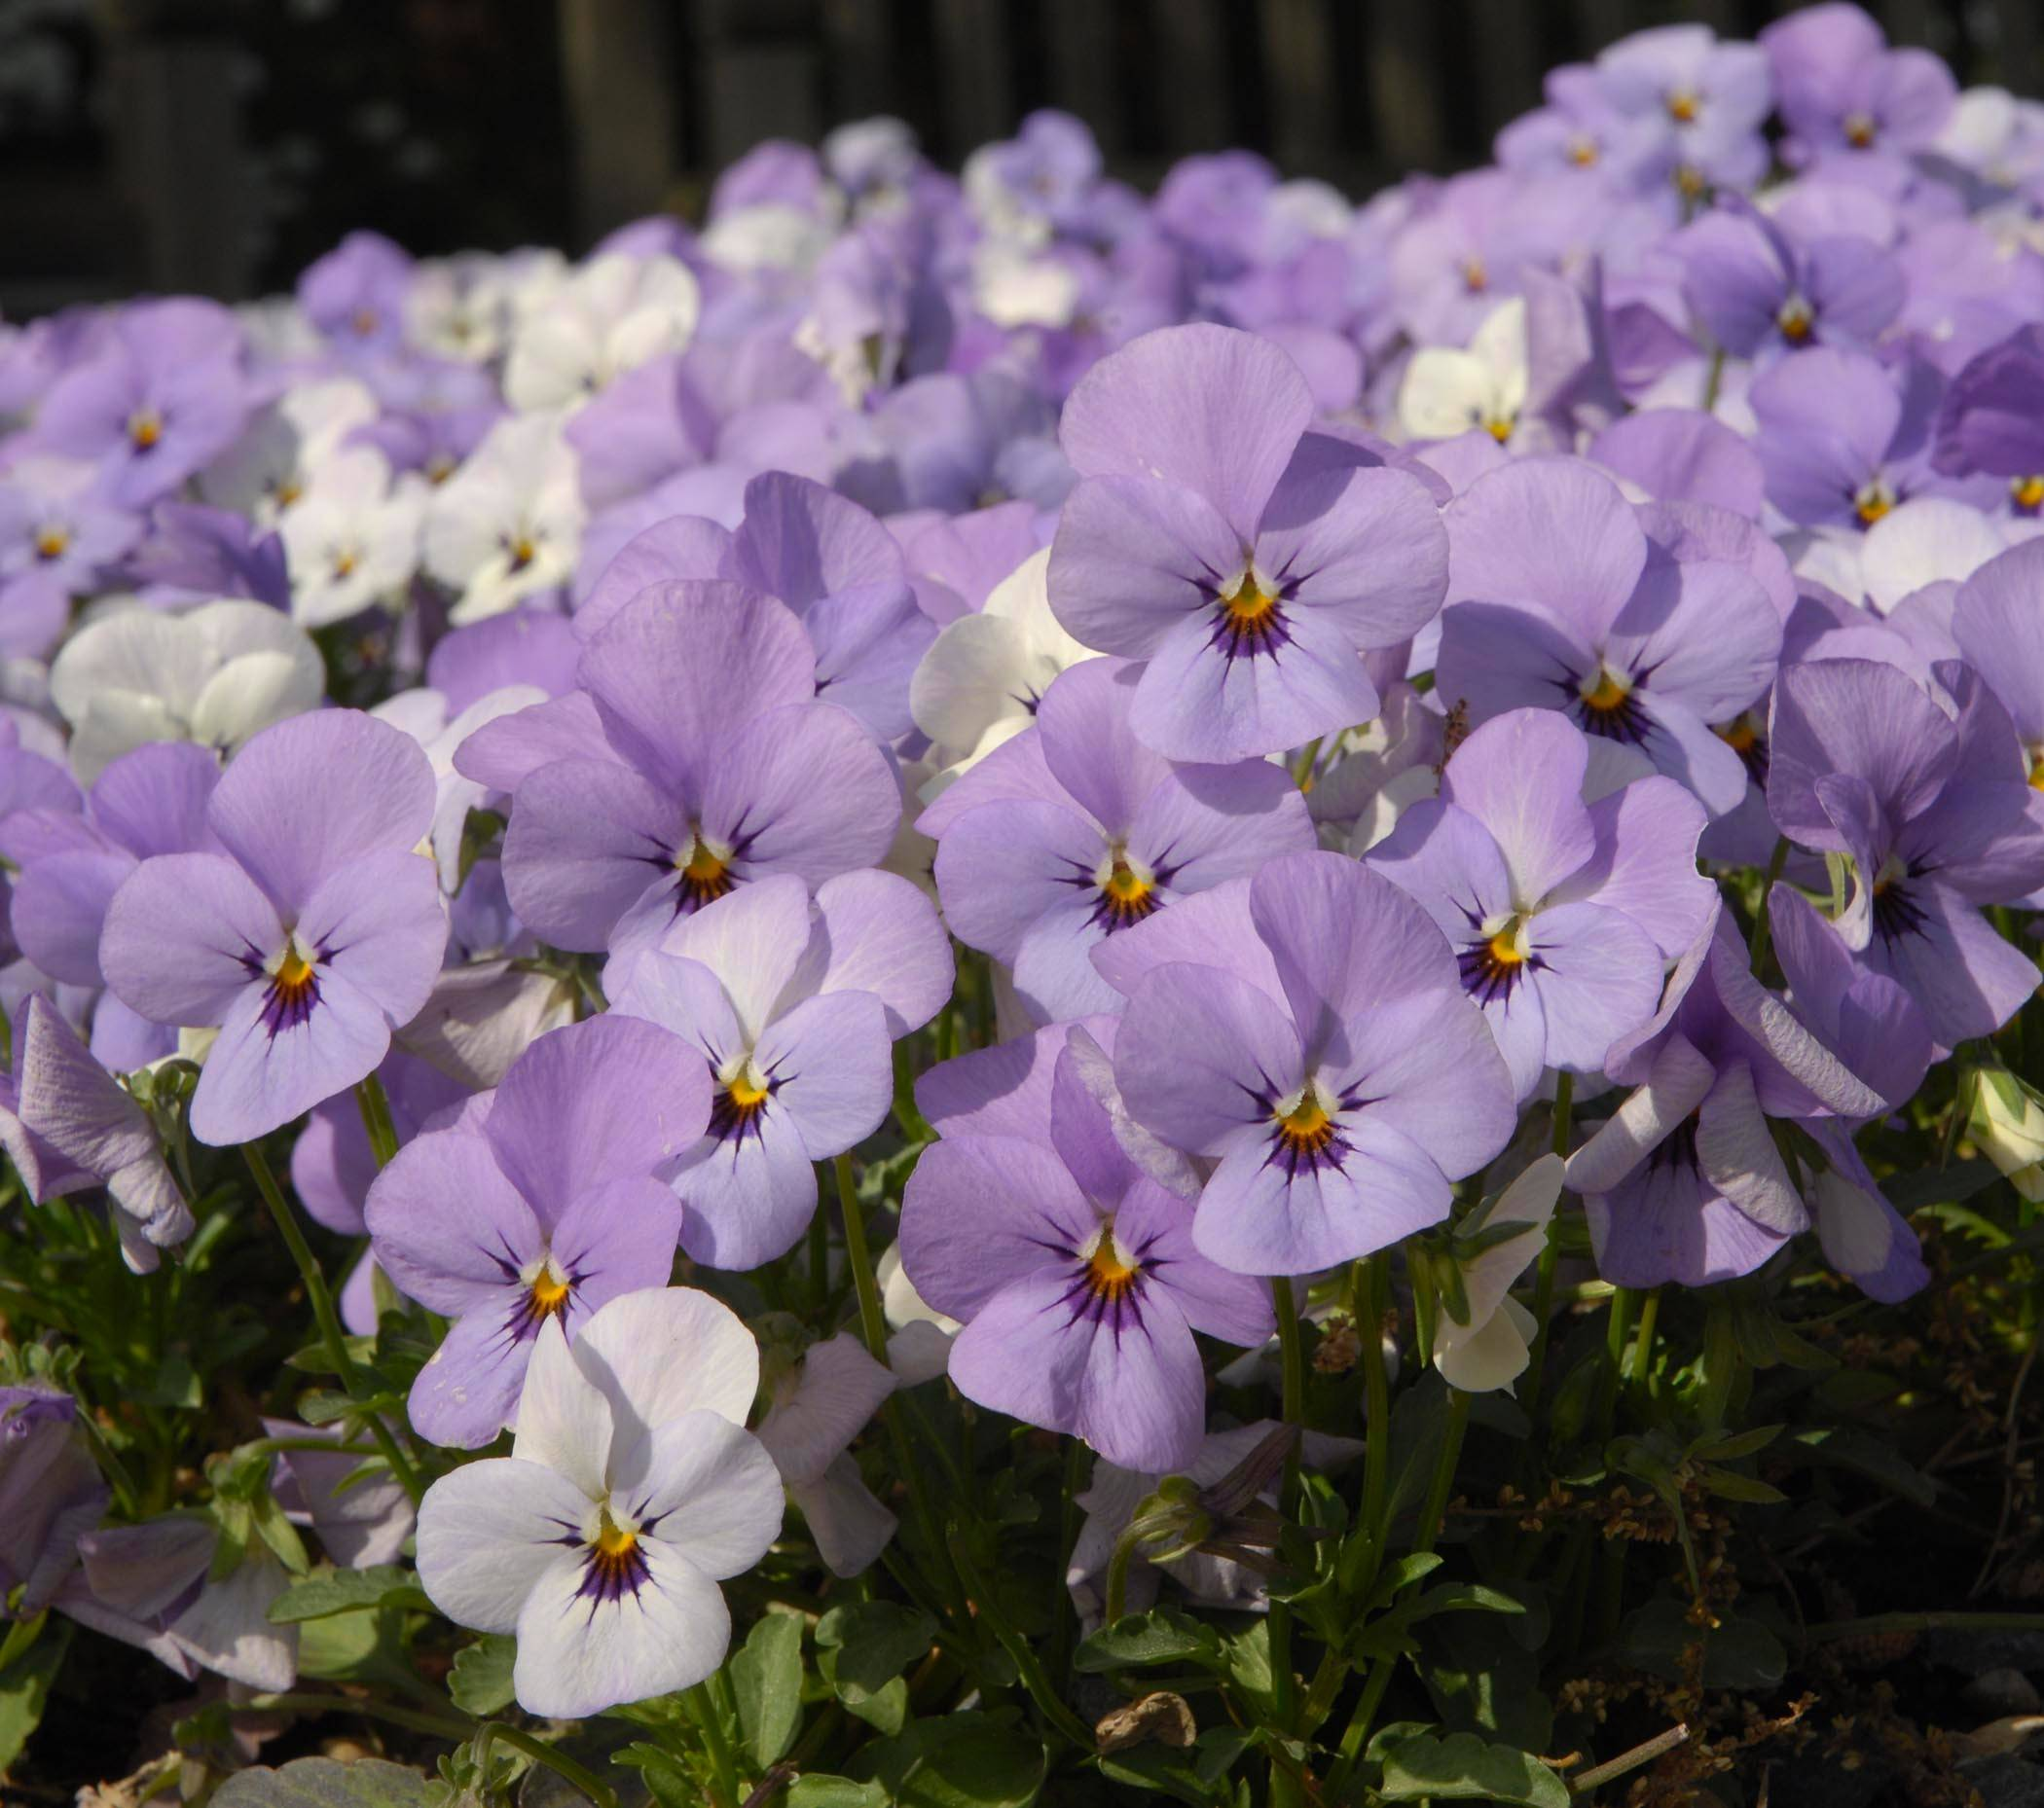 Plant cool-season annual flowers, such as these pansies, in early April to add color to your garden.